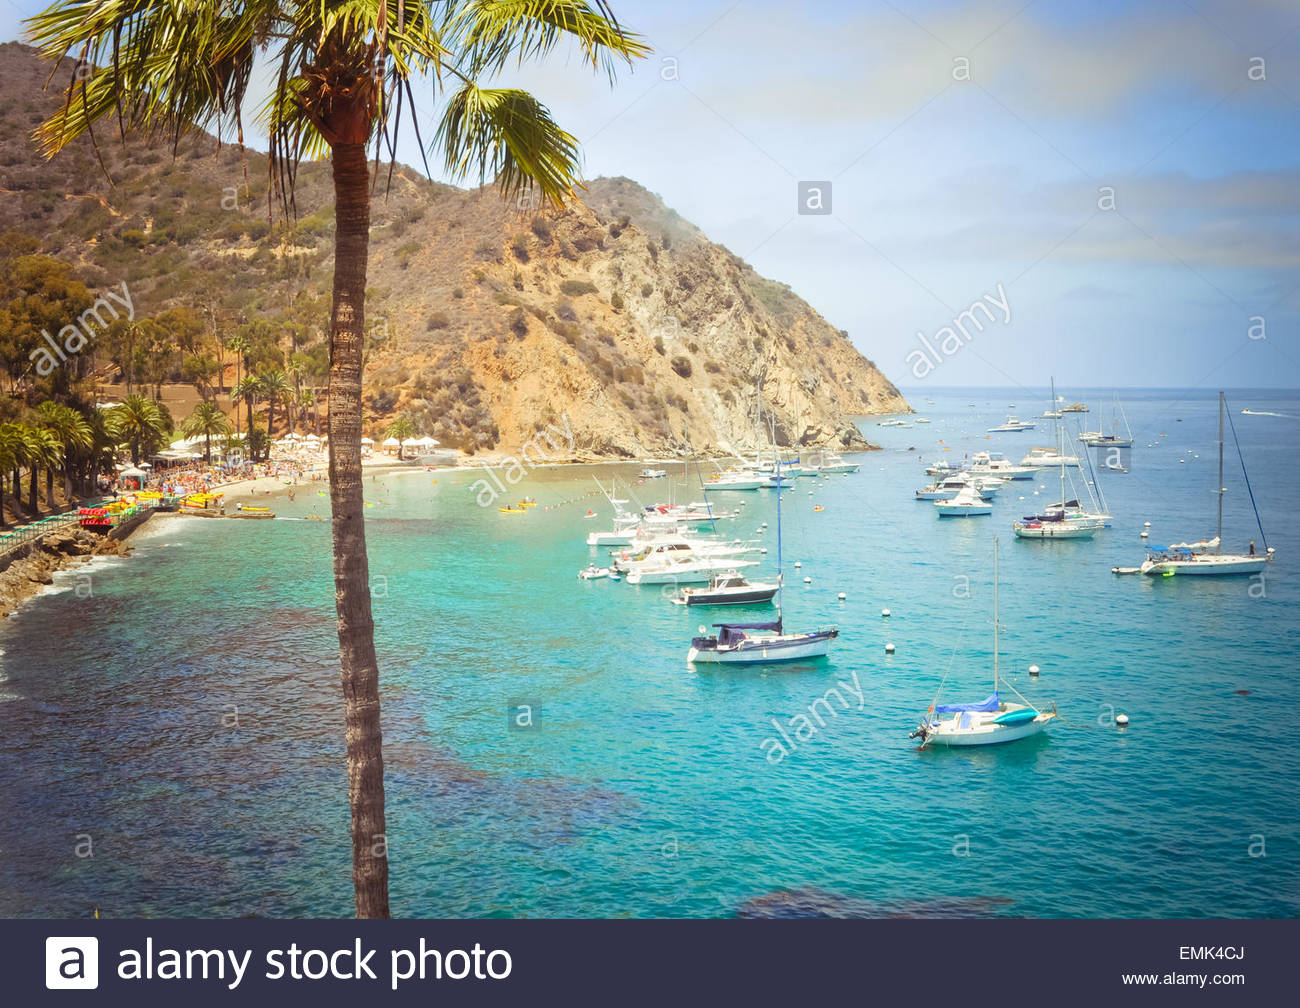 Sailboats in turquoise bay with barren hill and palm tree - Stock Image